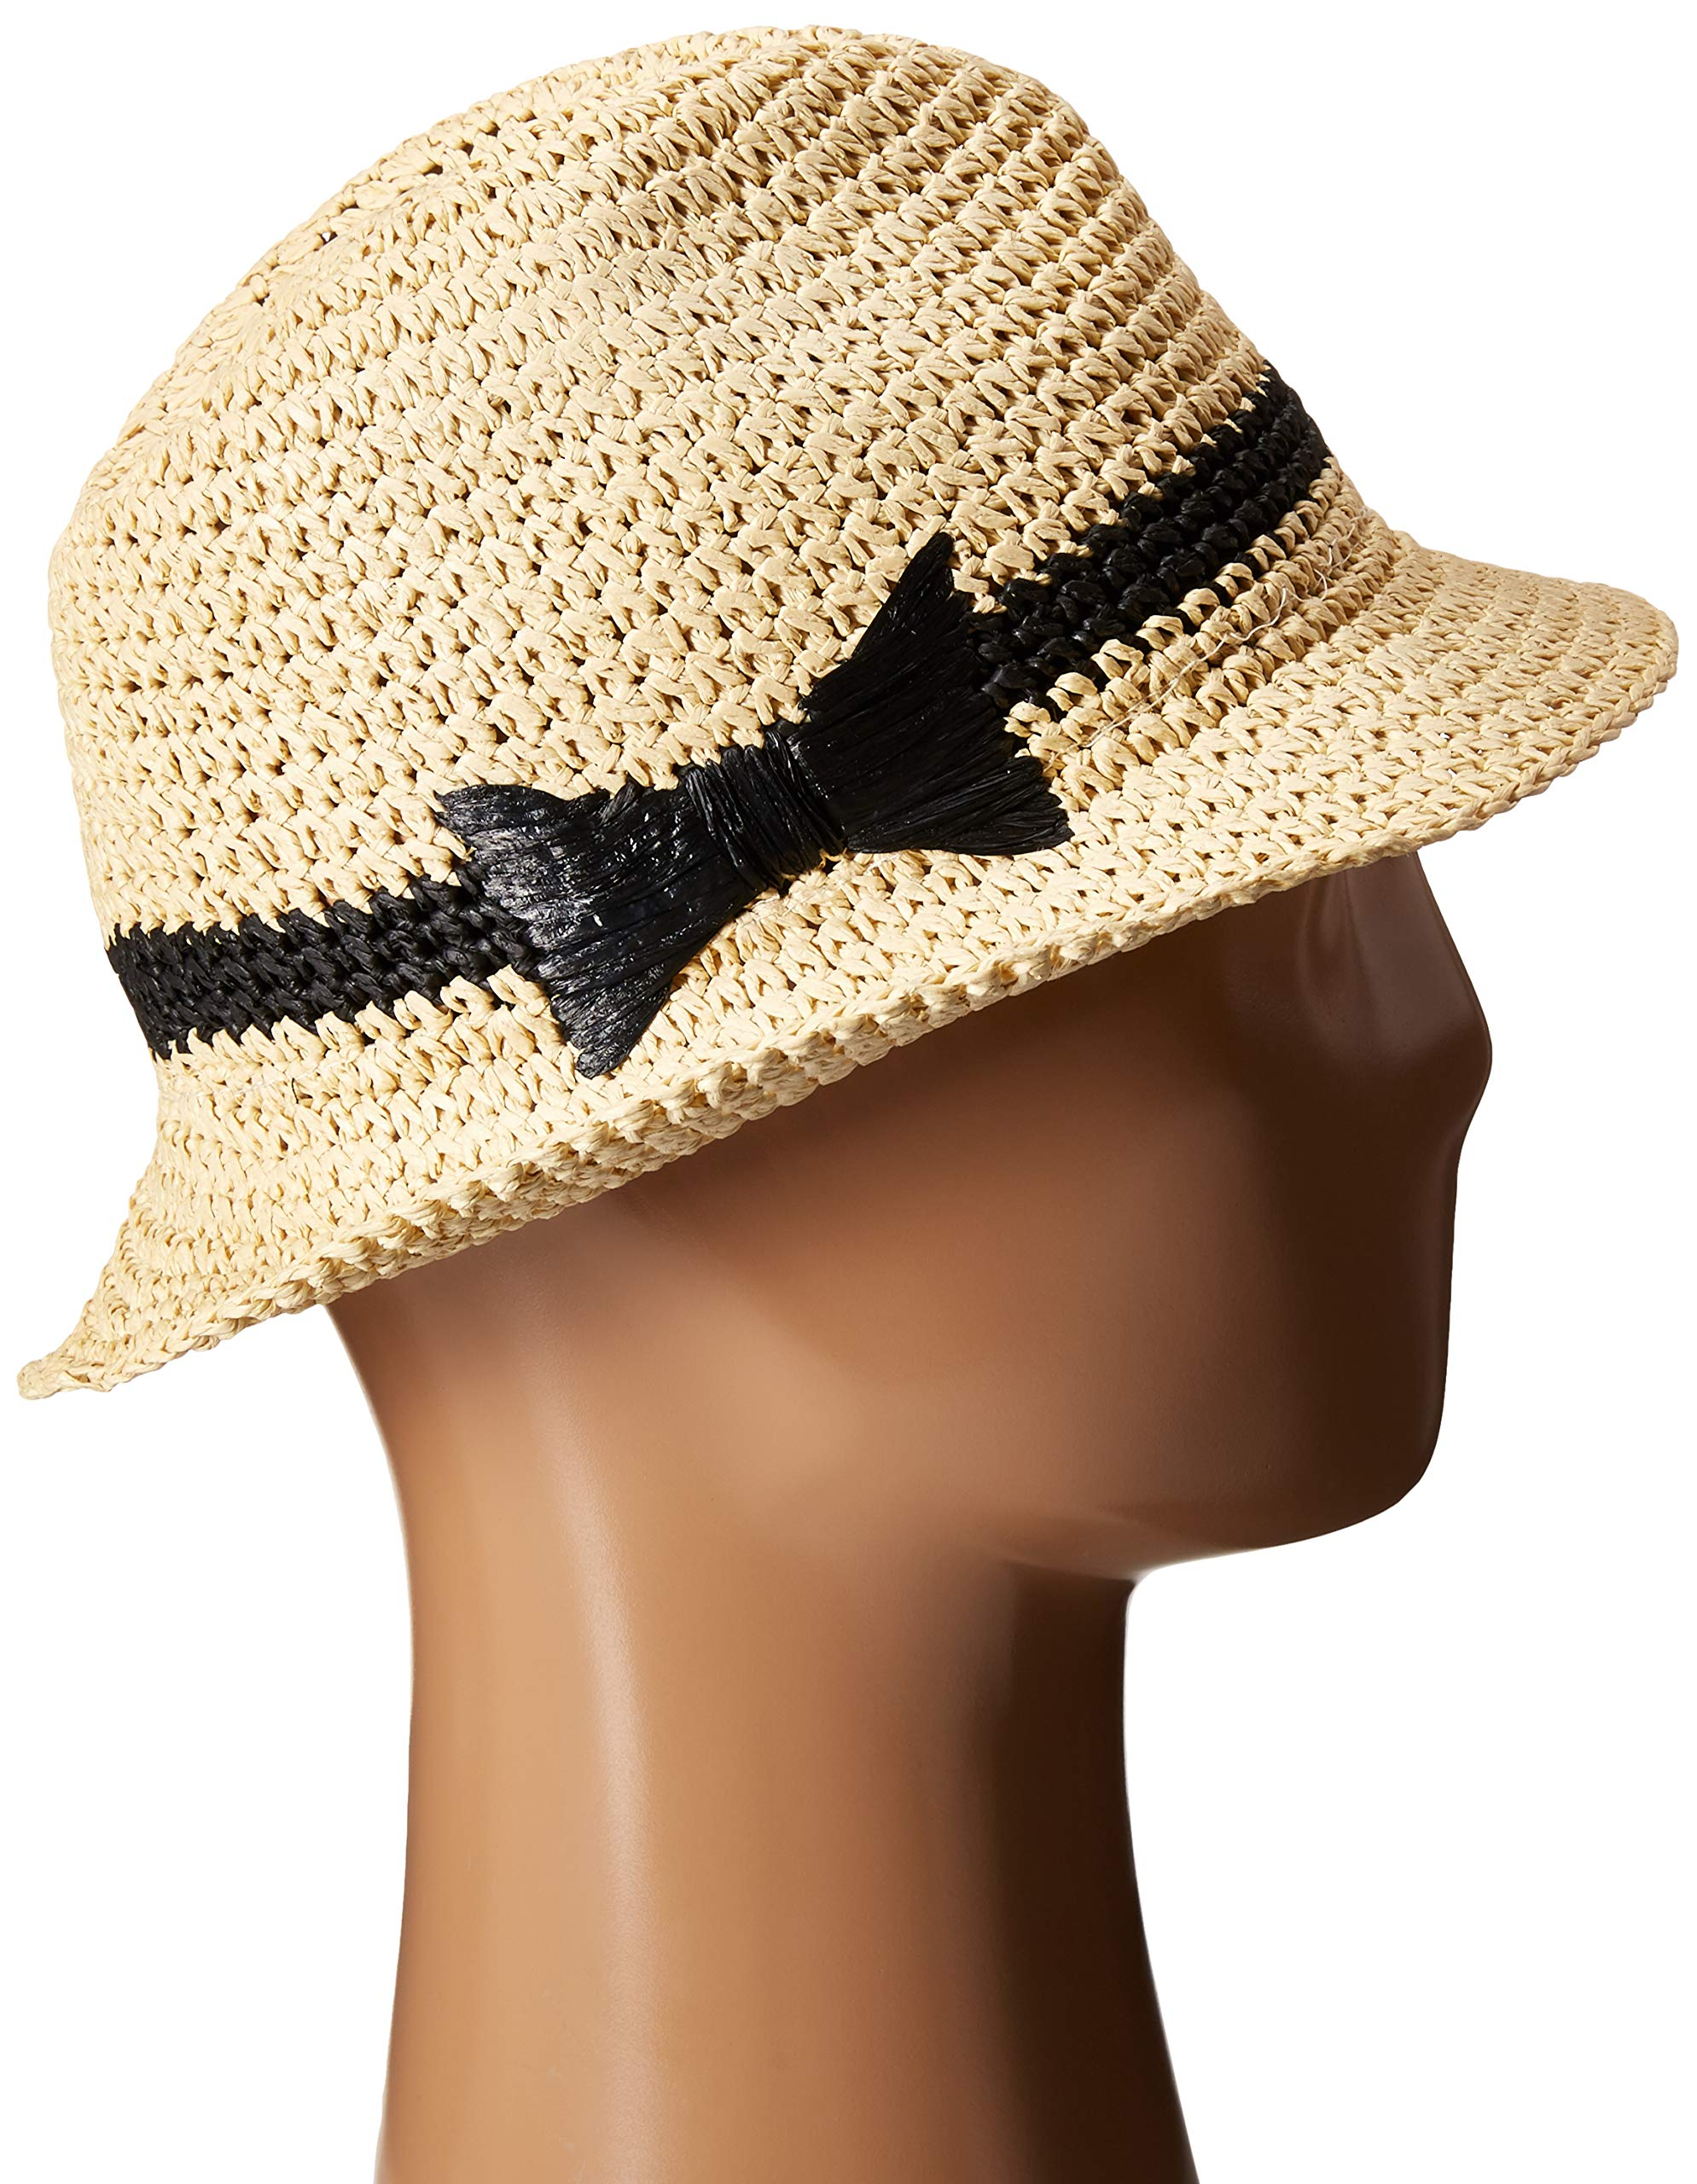 Kate Spade New York Women's Crochet Packable Fedora Natural/Black One Size by Kate Spade New York (Image #4)